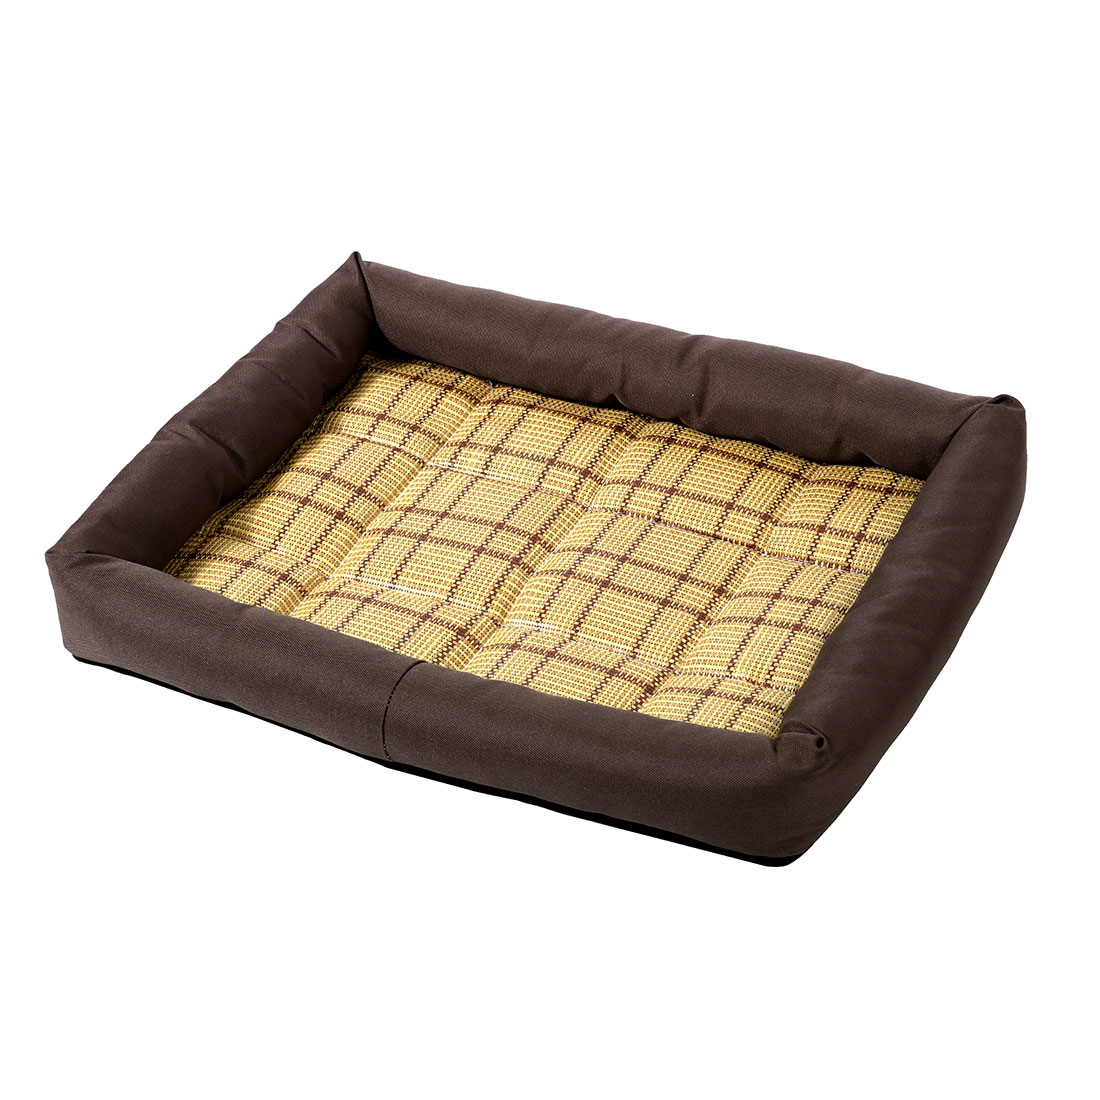 Unique Bargains Summer Cool Heat Resistant Bamboo Dog Cushion Pet Cat Sleeping Bed Mat M Coffee Color